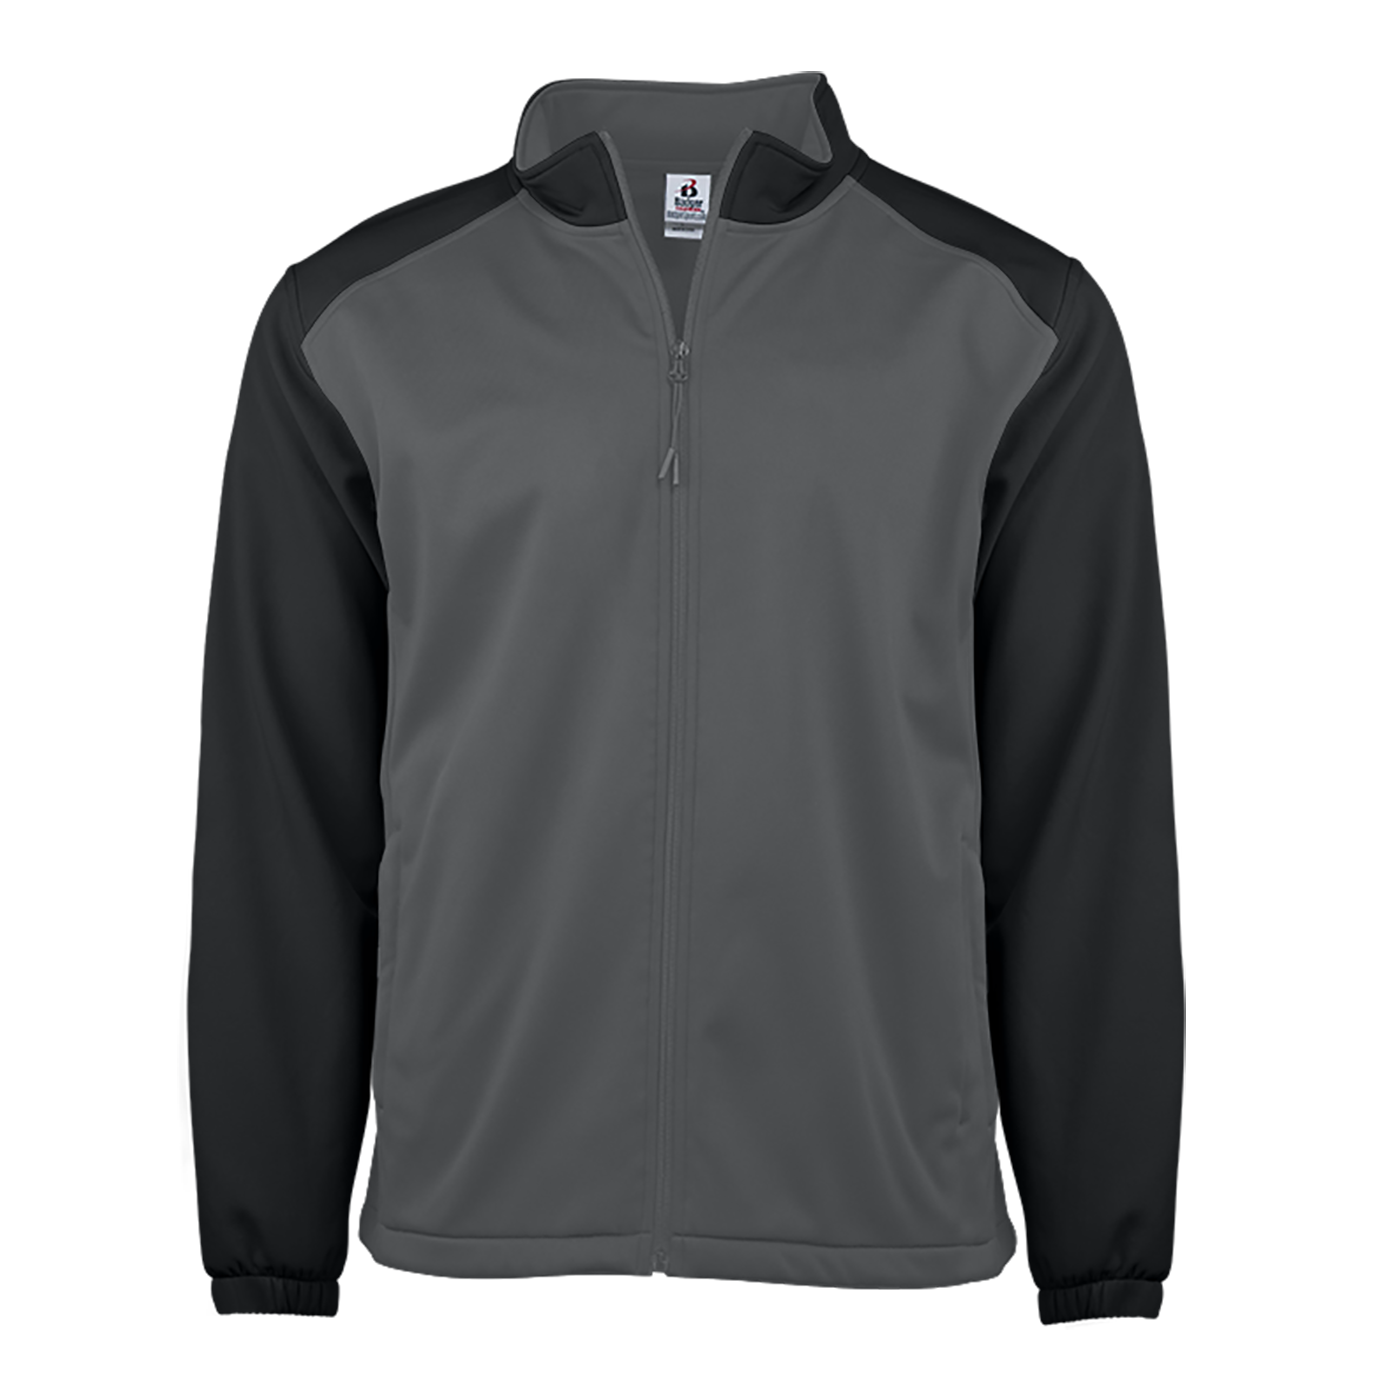 Soft Shell Sport Jacket - Graphite/Black